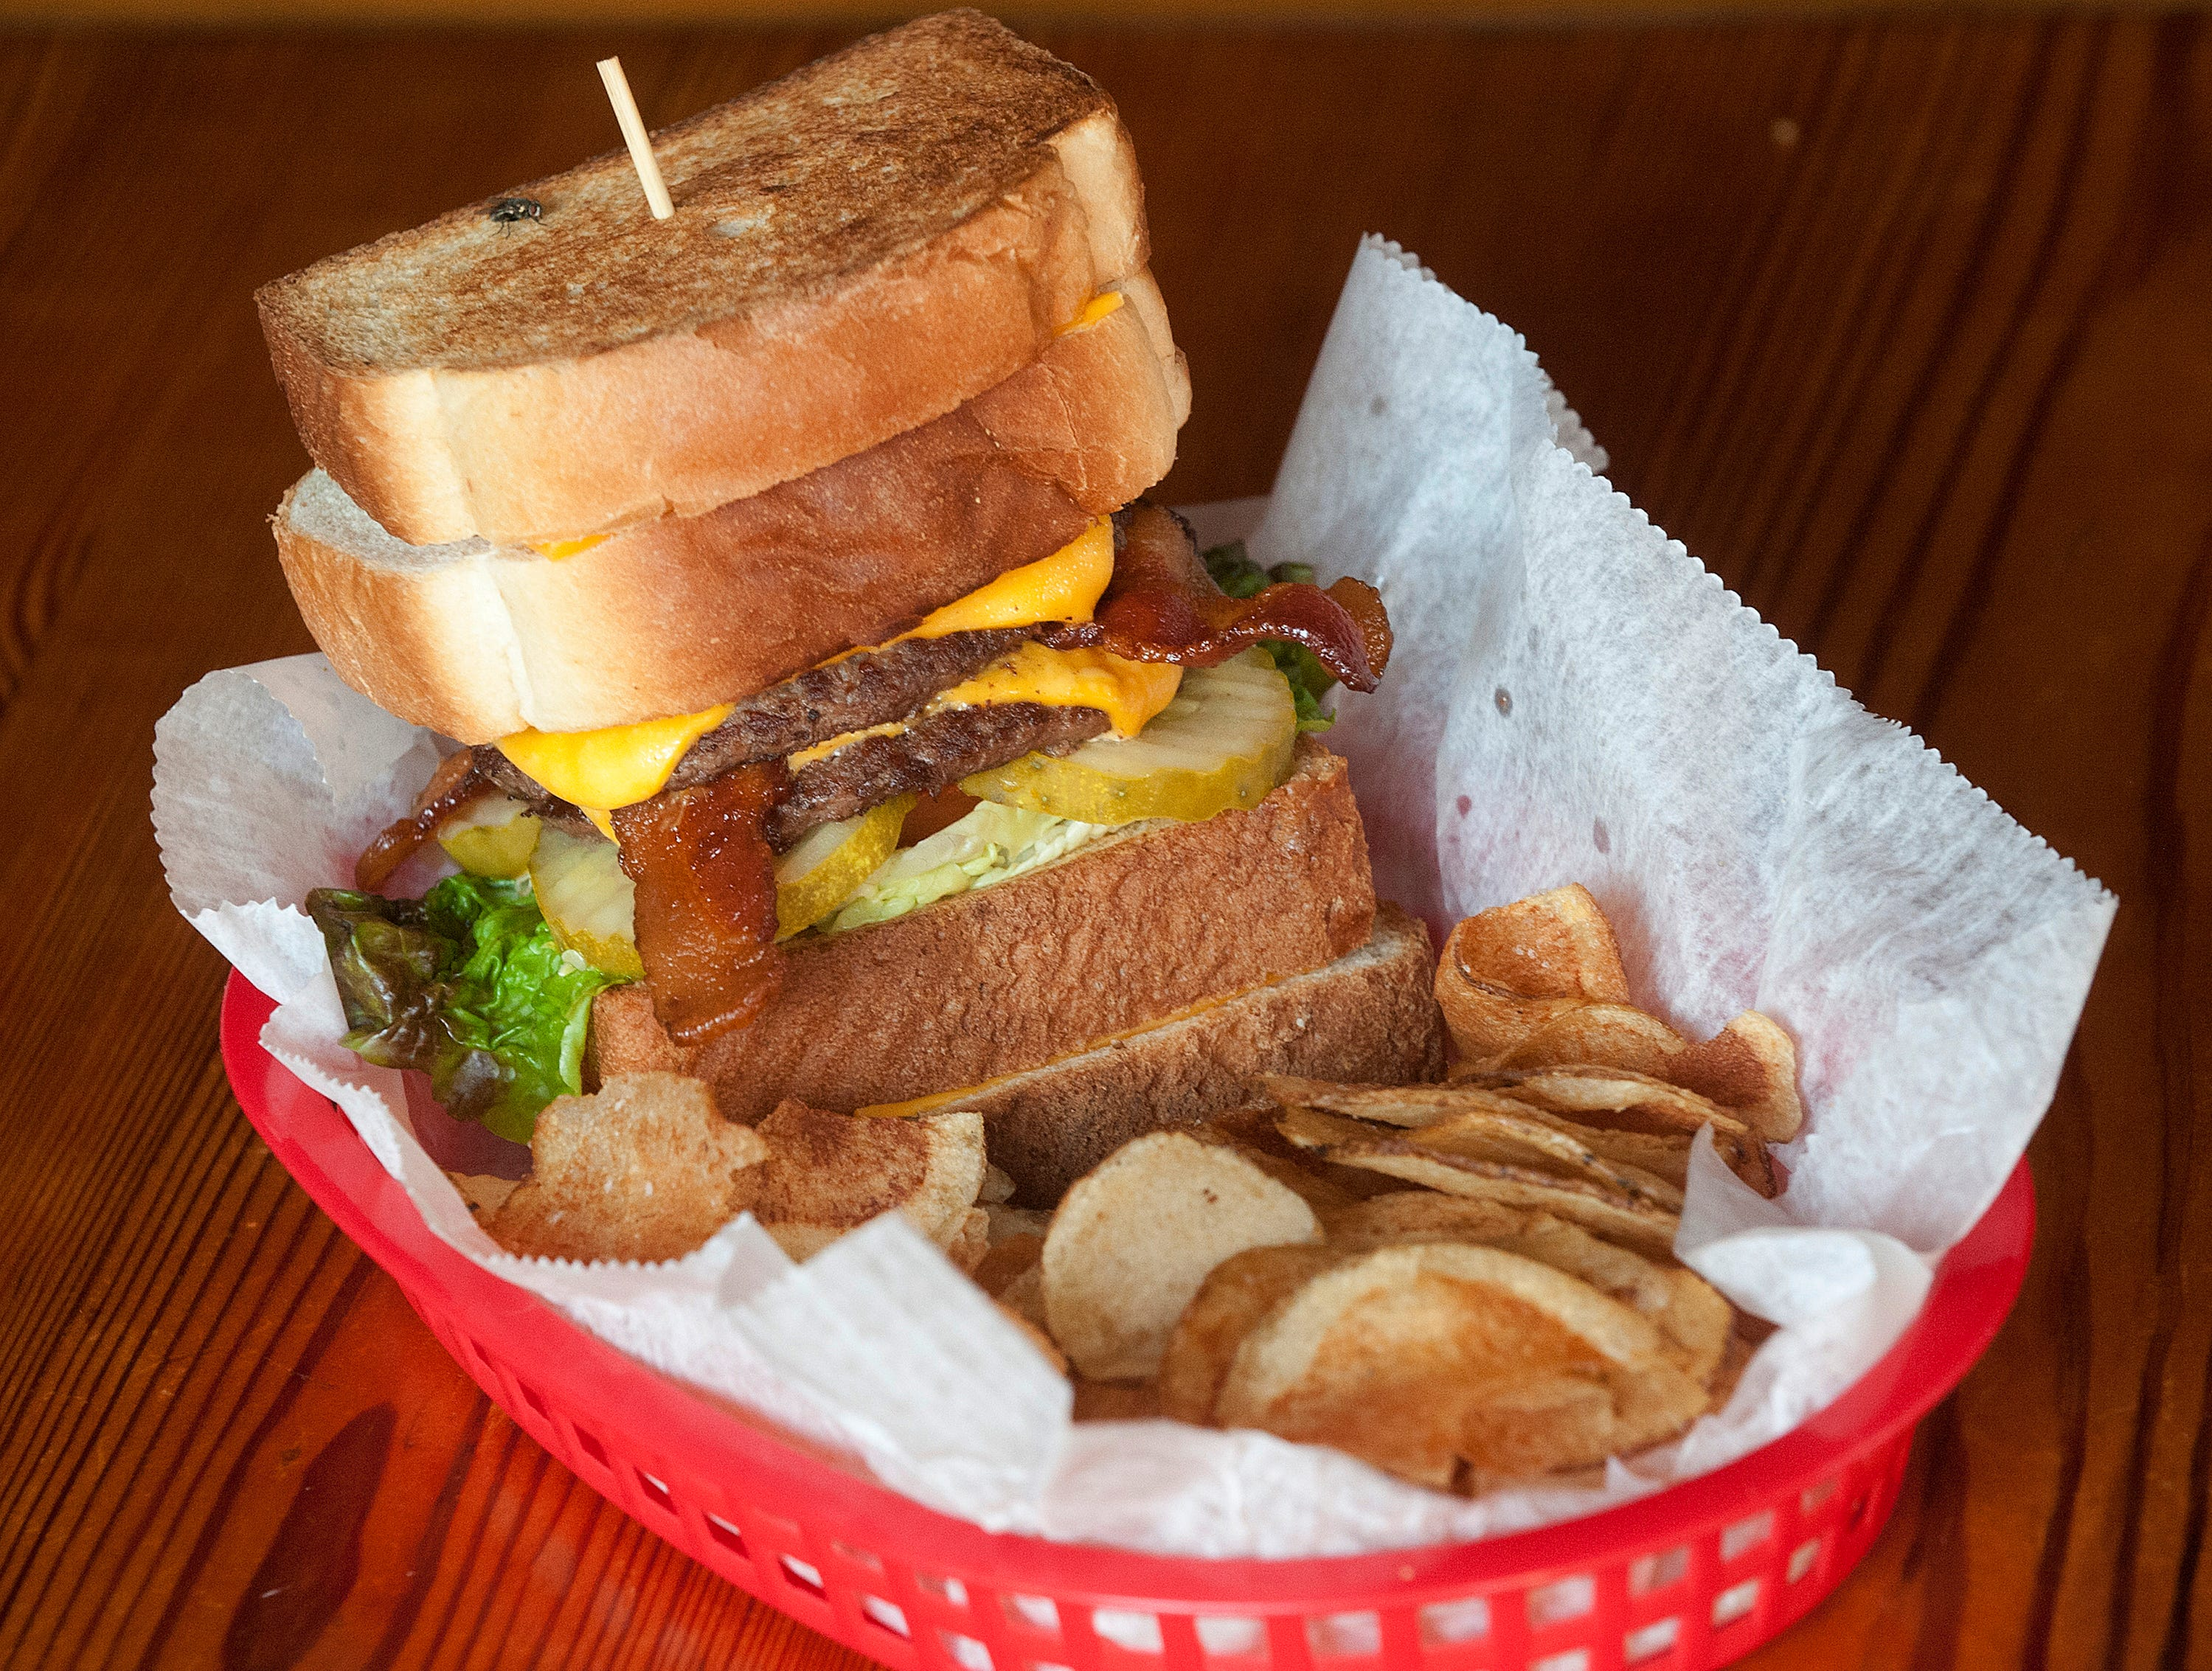 The Silver Dollar Bar and Restaurant's ultimate burger is topped with bacon, lettuce and tomato, pickles, American cheese, and served between two grilled cheese sandwiches. The dish is often accompanied by an order of French fries or home-made potato chips (seen here.)